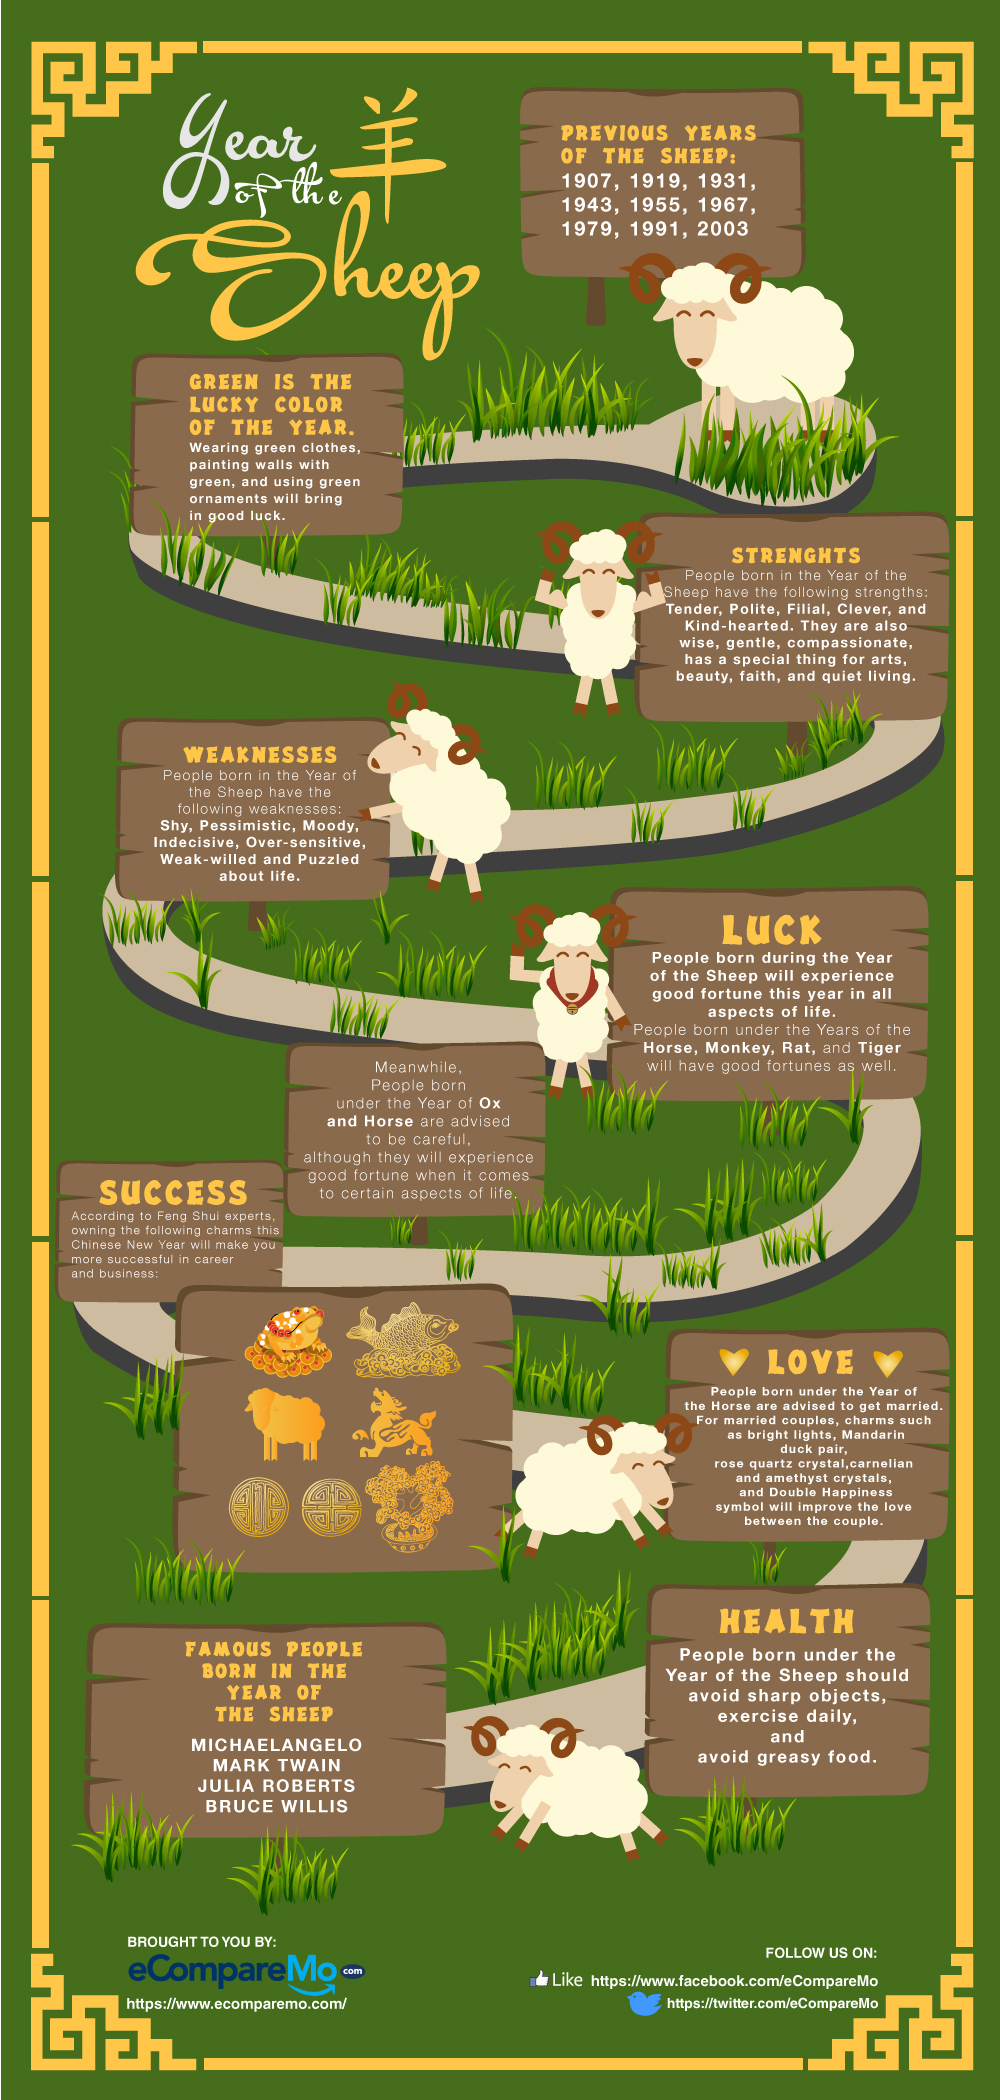 Baa Baa Black Sheep no more! Interesting facts about the Year of the Sheep.